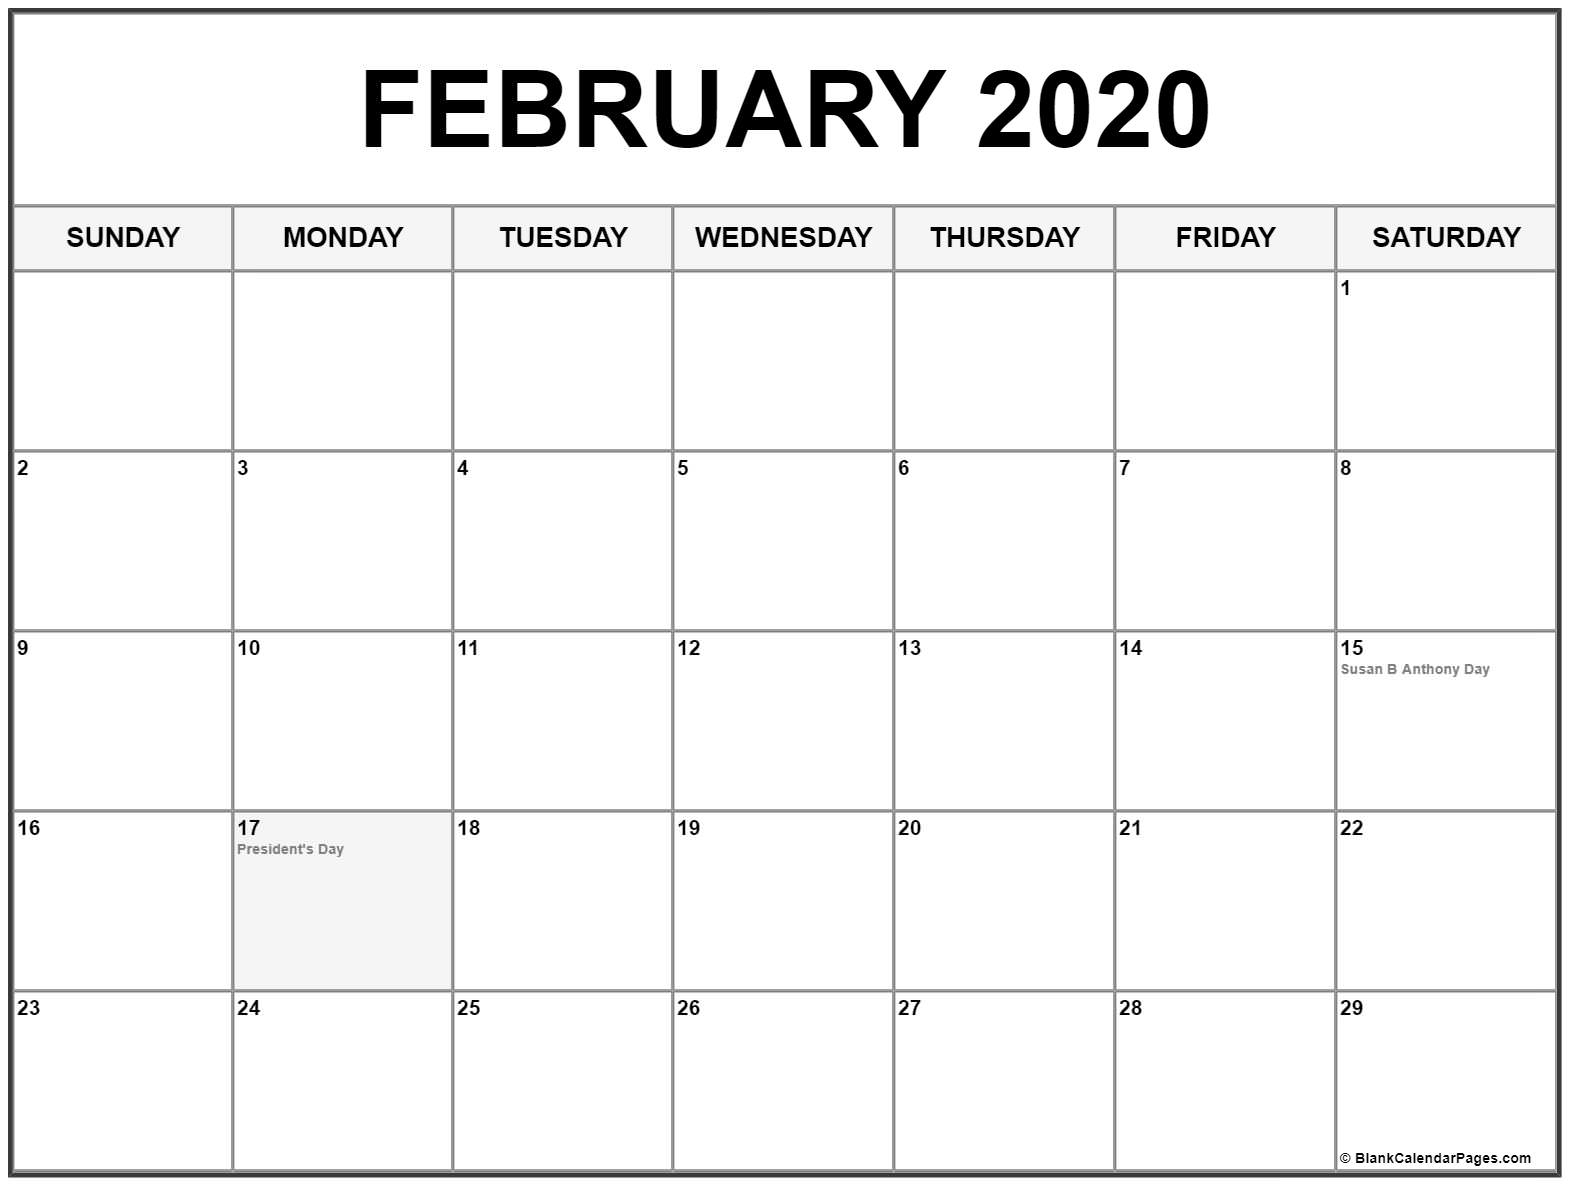 Collection Of February 2020 Calendars With Holidays in 2020 Calendar With All Function